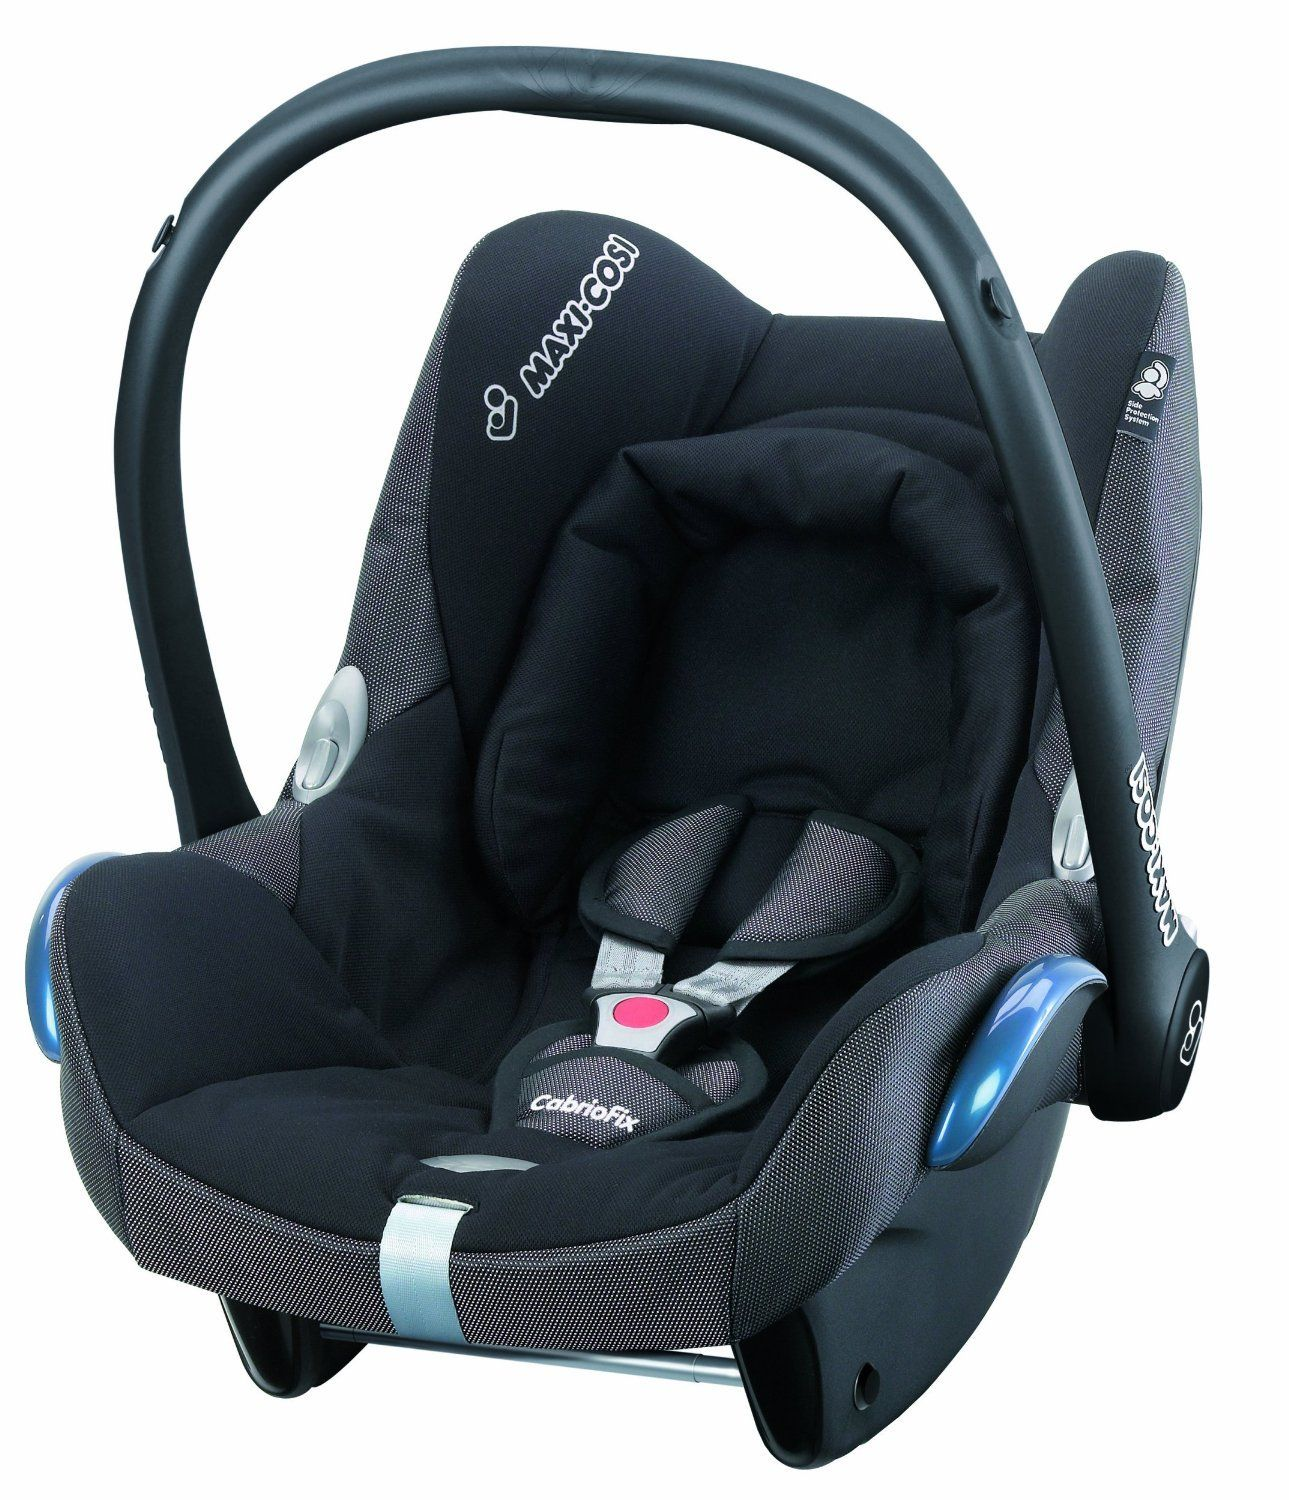 Maxicosi Car Seat Rental